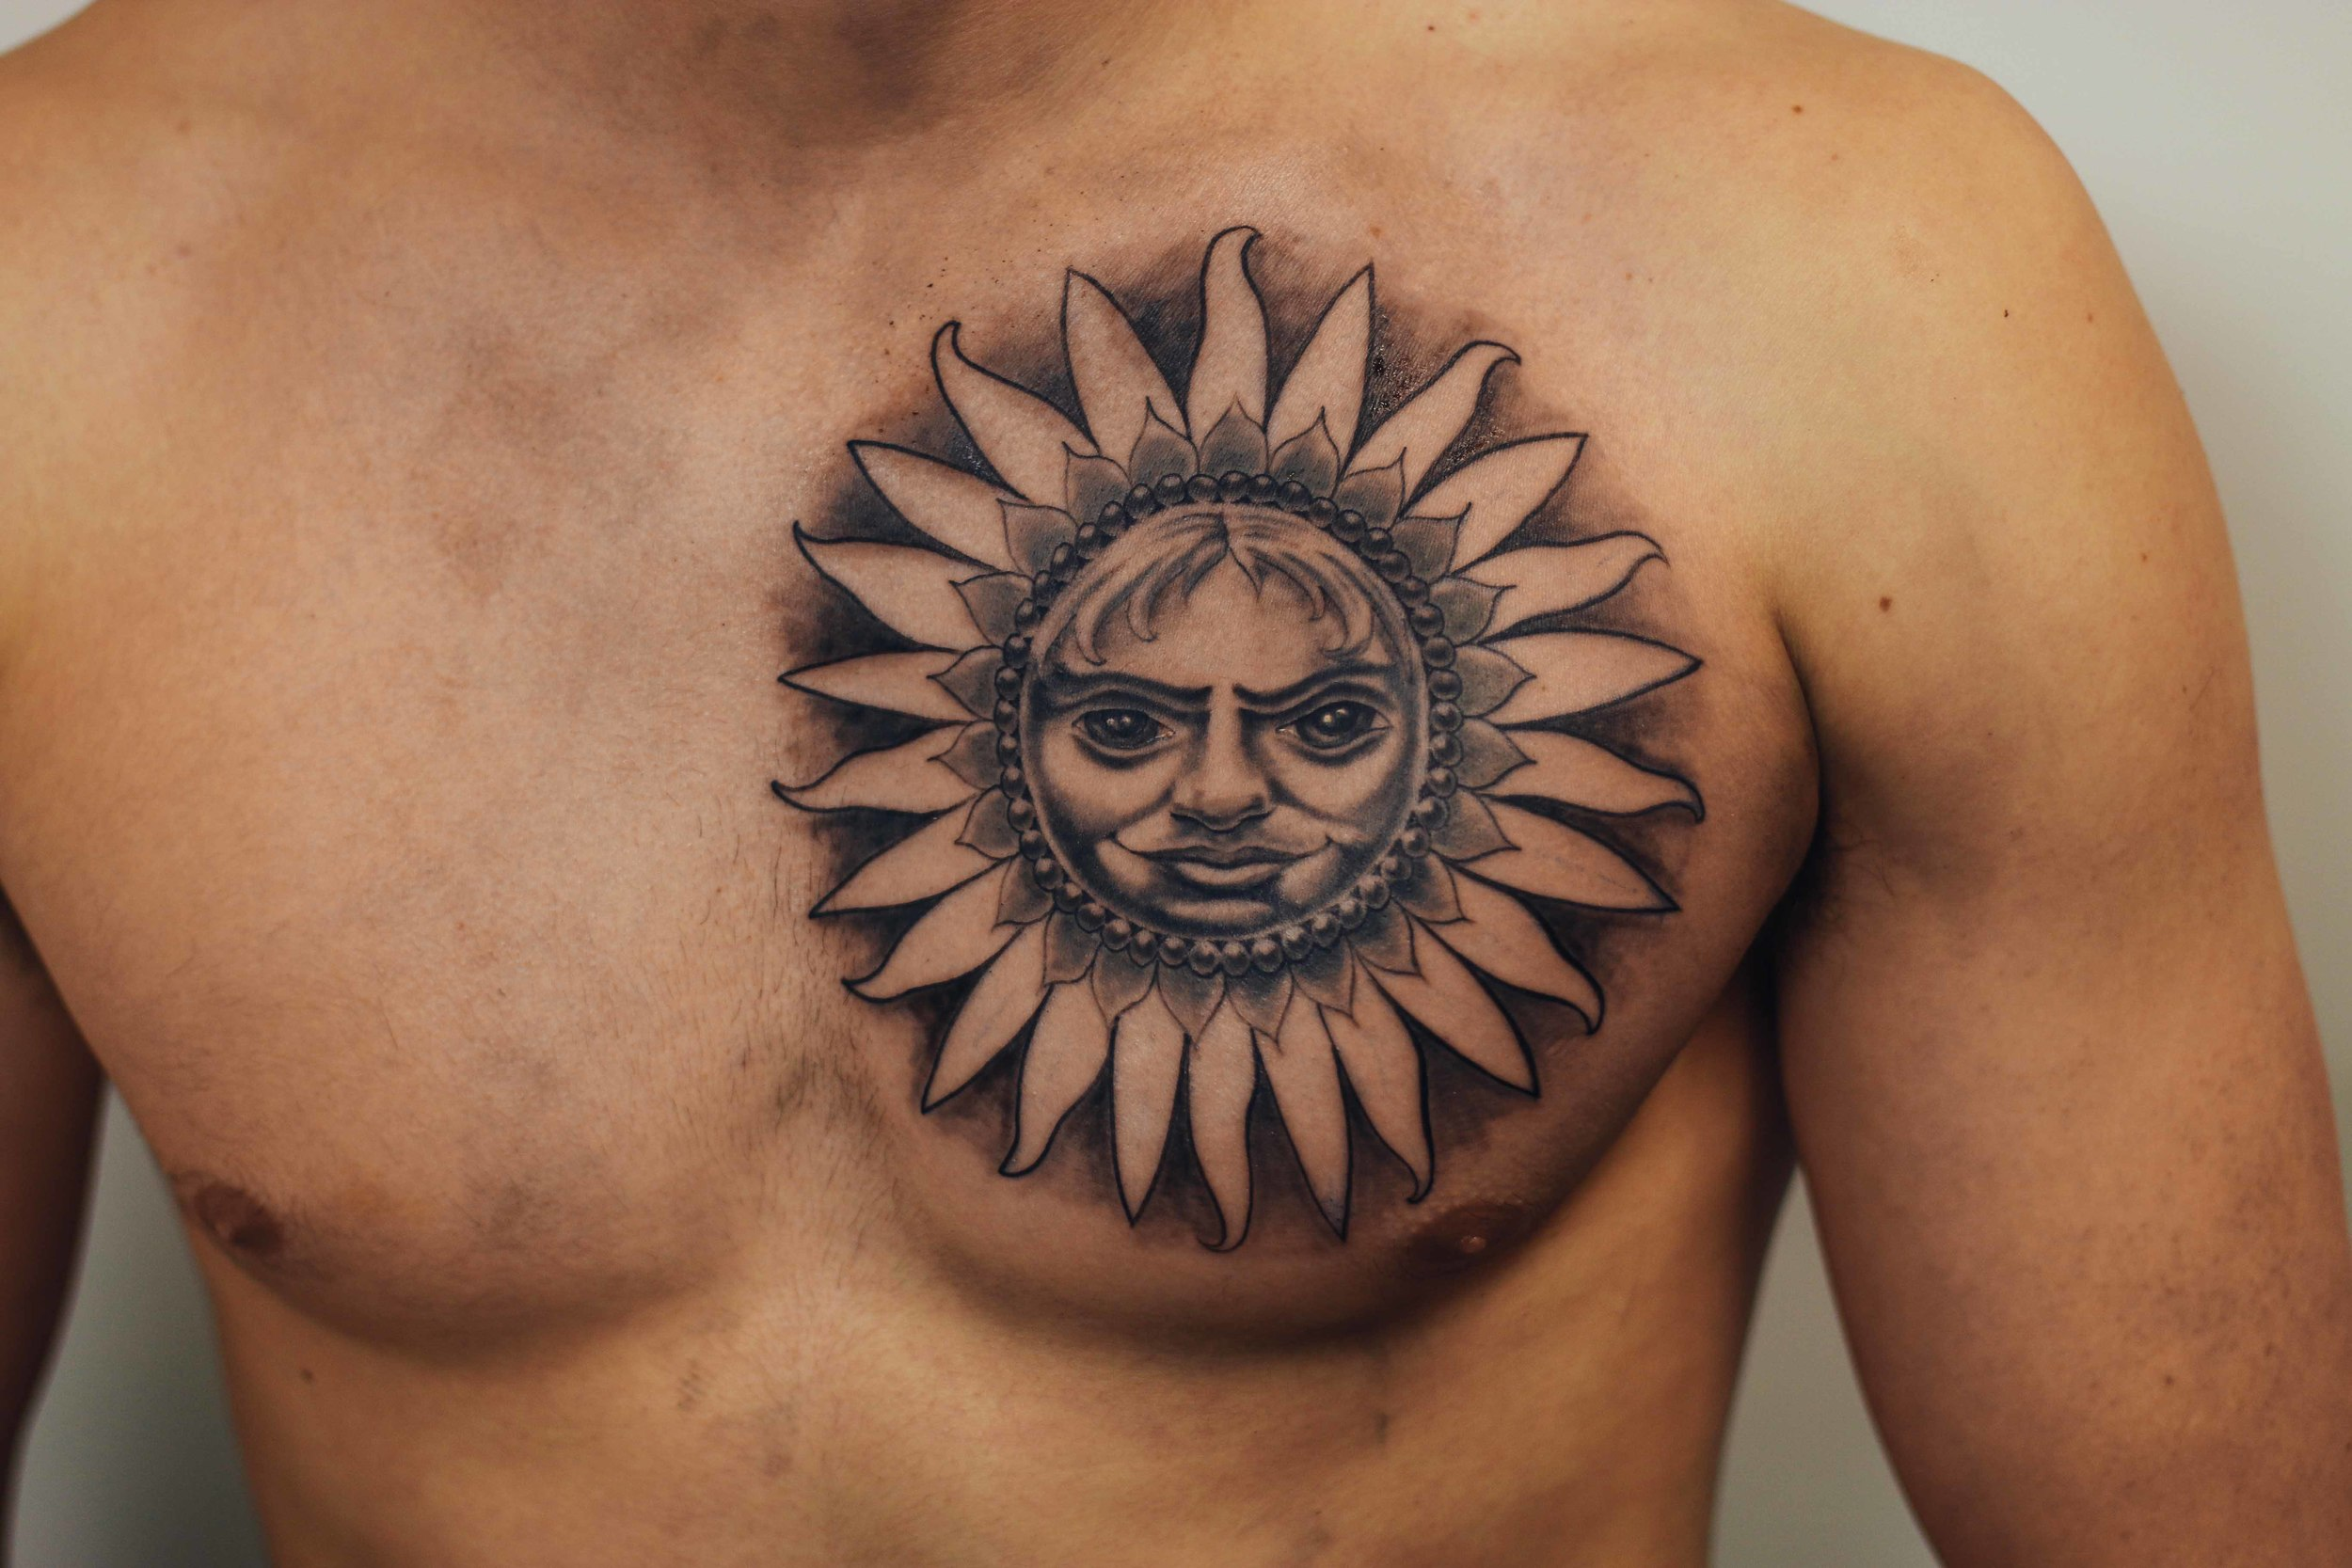 fyink-tattoos-aprshoplife-41.jpg